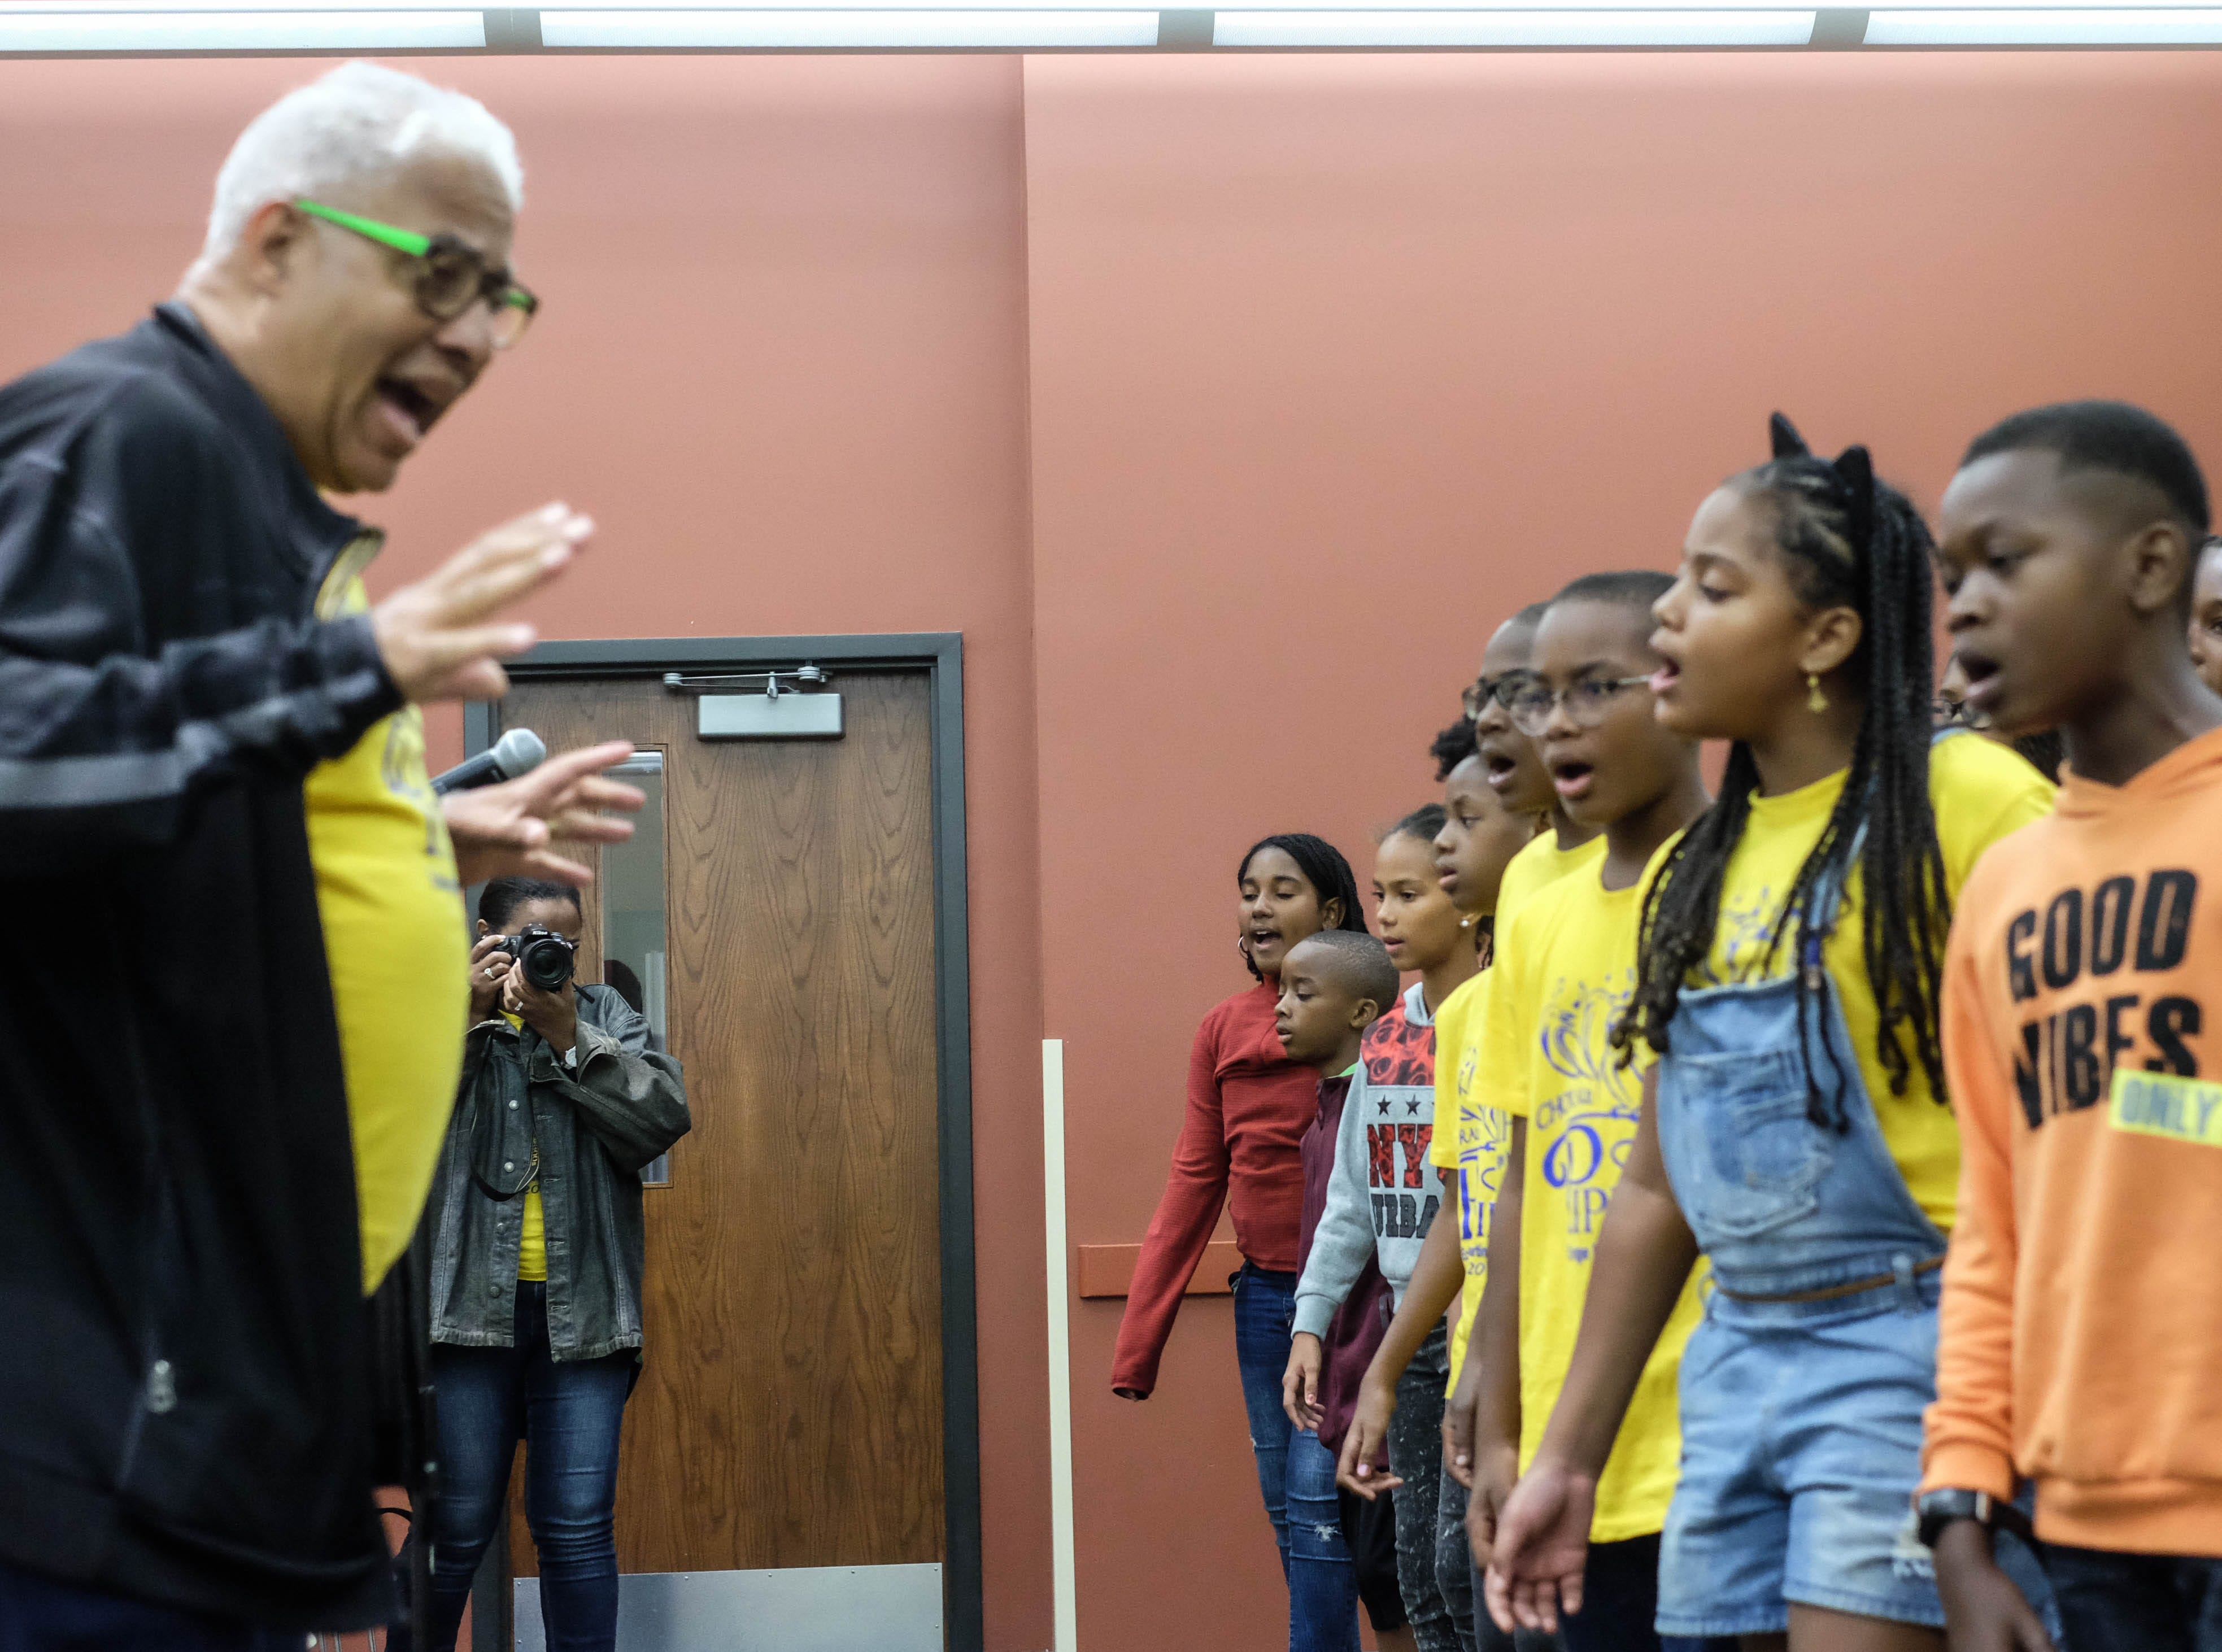 Students from Martinique will perform at Festival International on April 28, 2019, as part of an exchange program with Myrtle Place Elementary School in Lafayette.